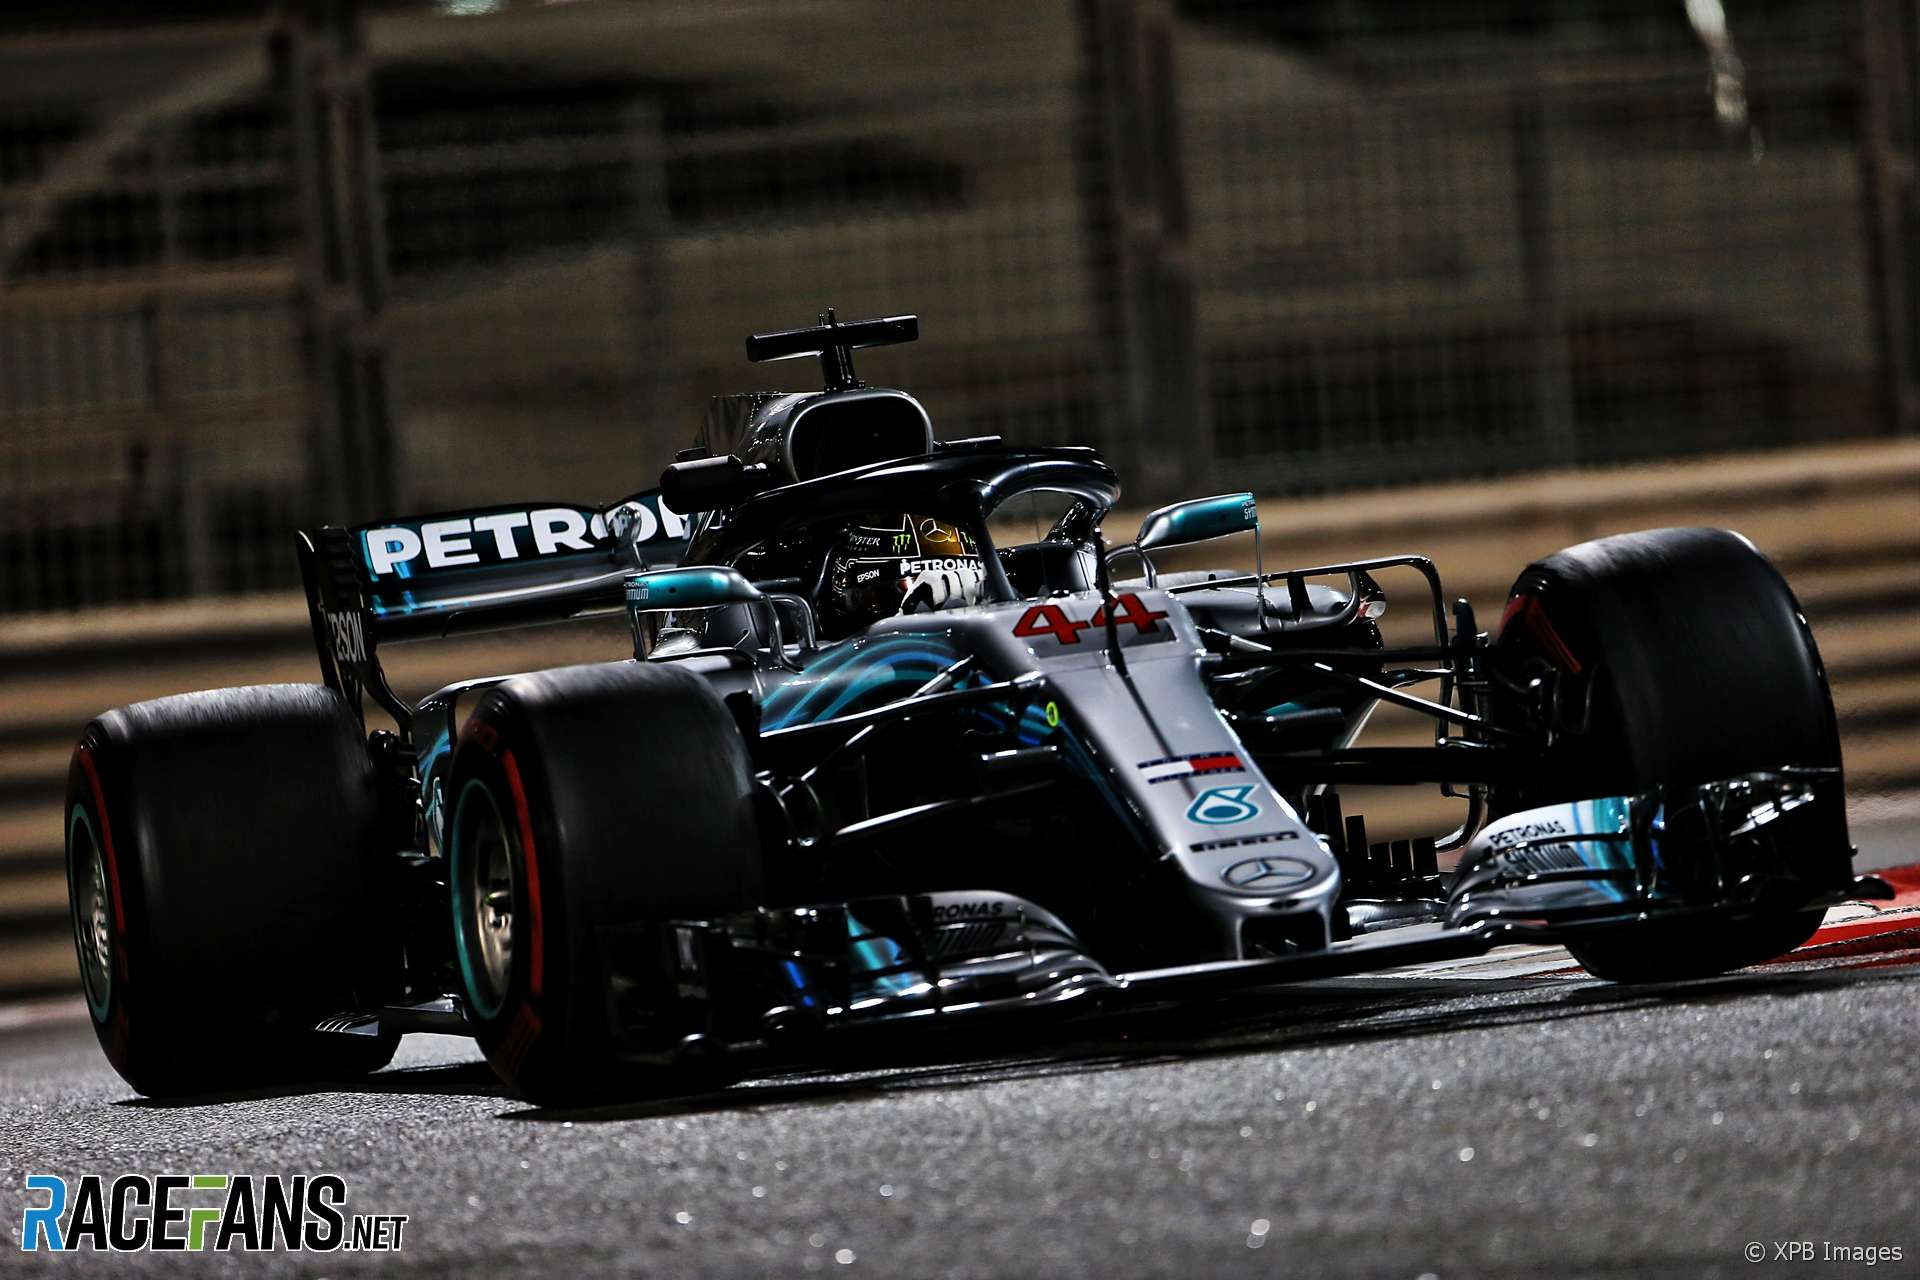 hamilton on pole as mercedes sweep front row for finale racefans. Black Bedroom Furniture Sets. Home Design Ideas